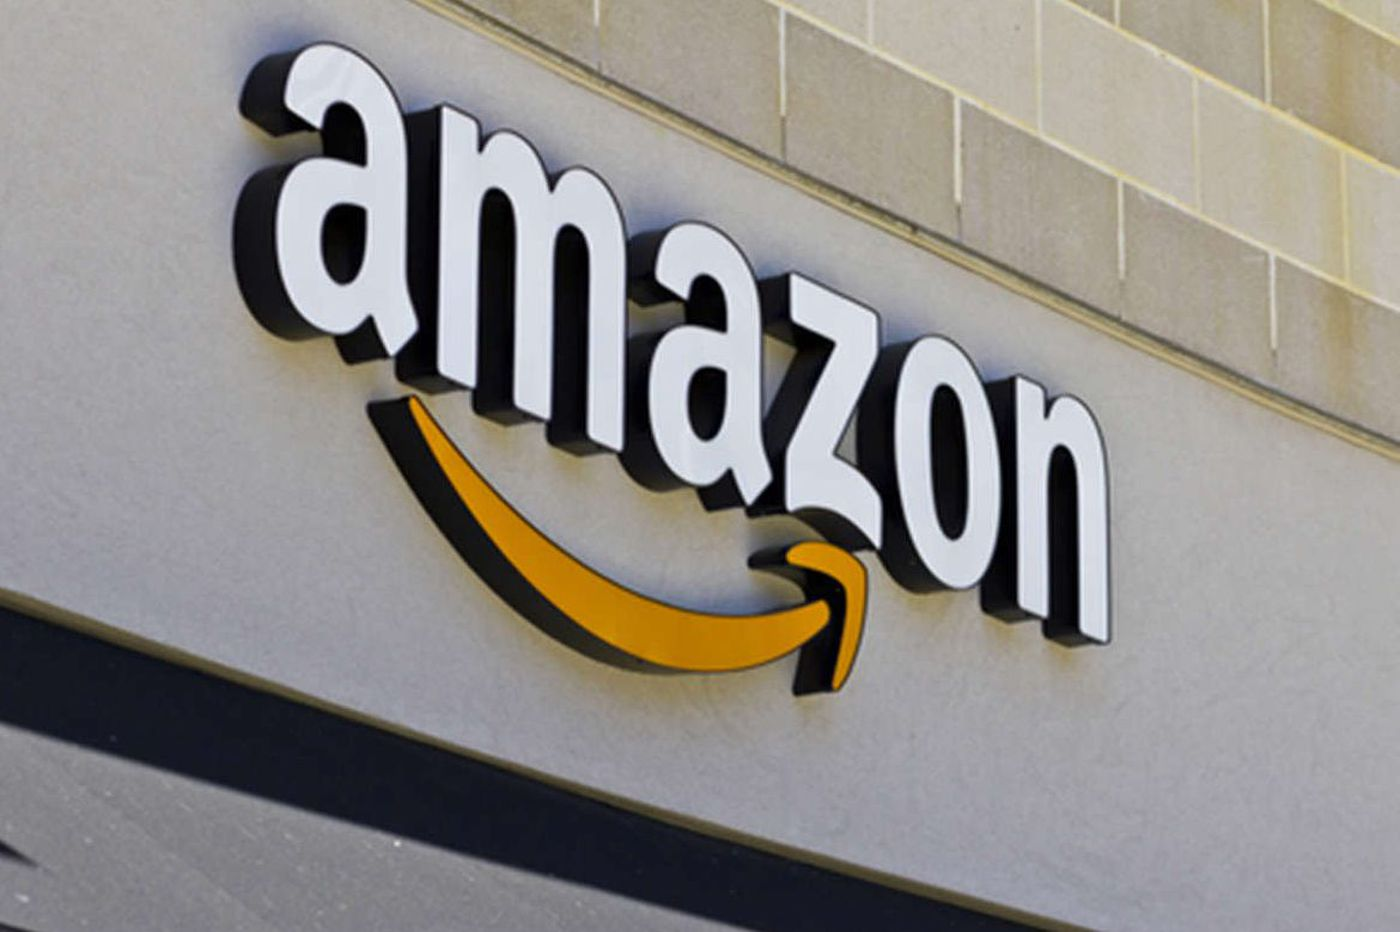 For finalists in the Amazon headquarters sweepstakes, the fun has turned serious